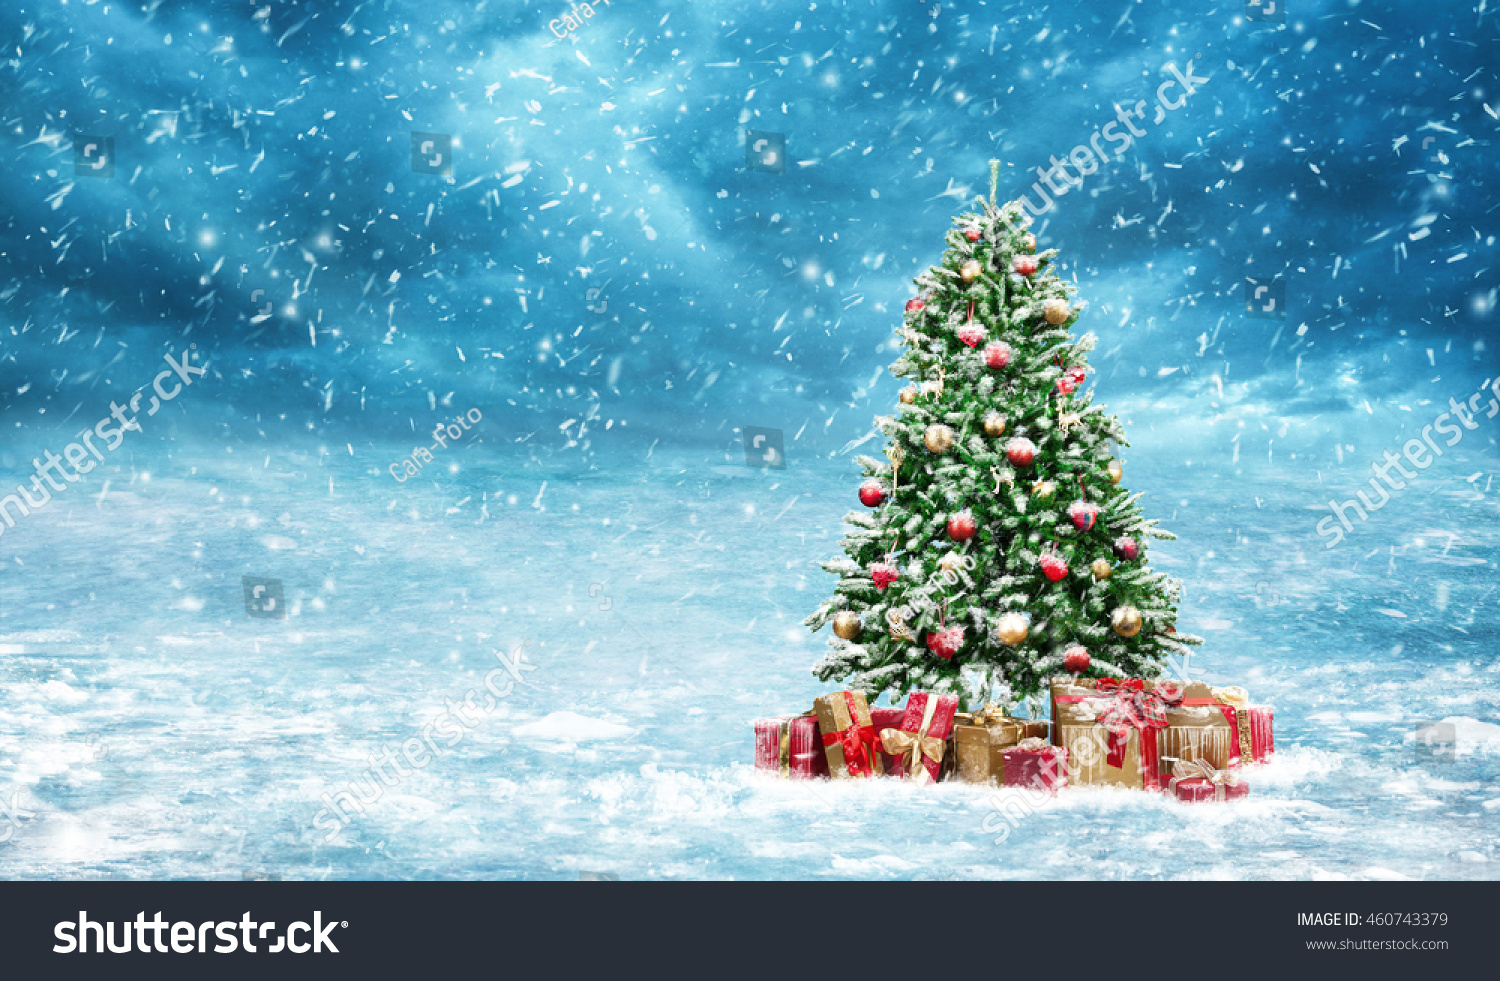 Beautiful winter landscape decorated christmas tree stock for Christmas landscape images